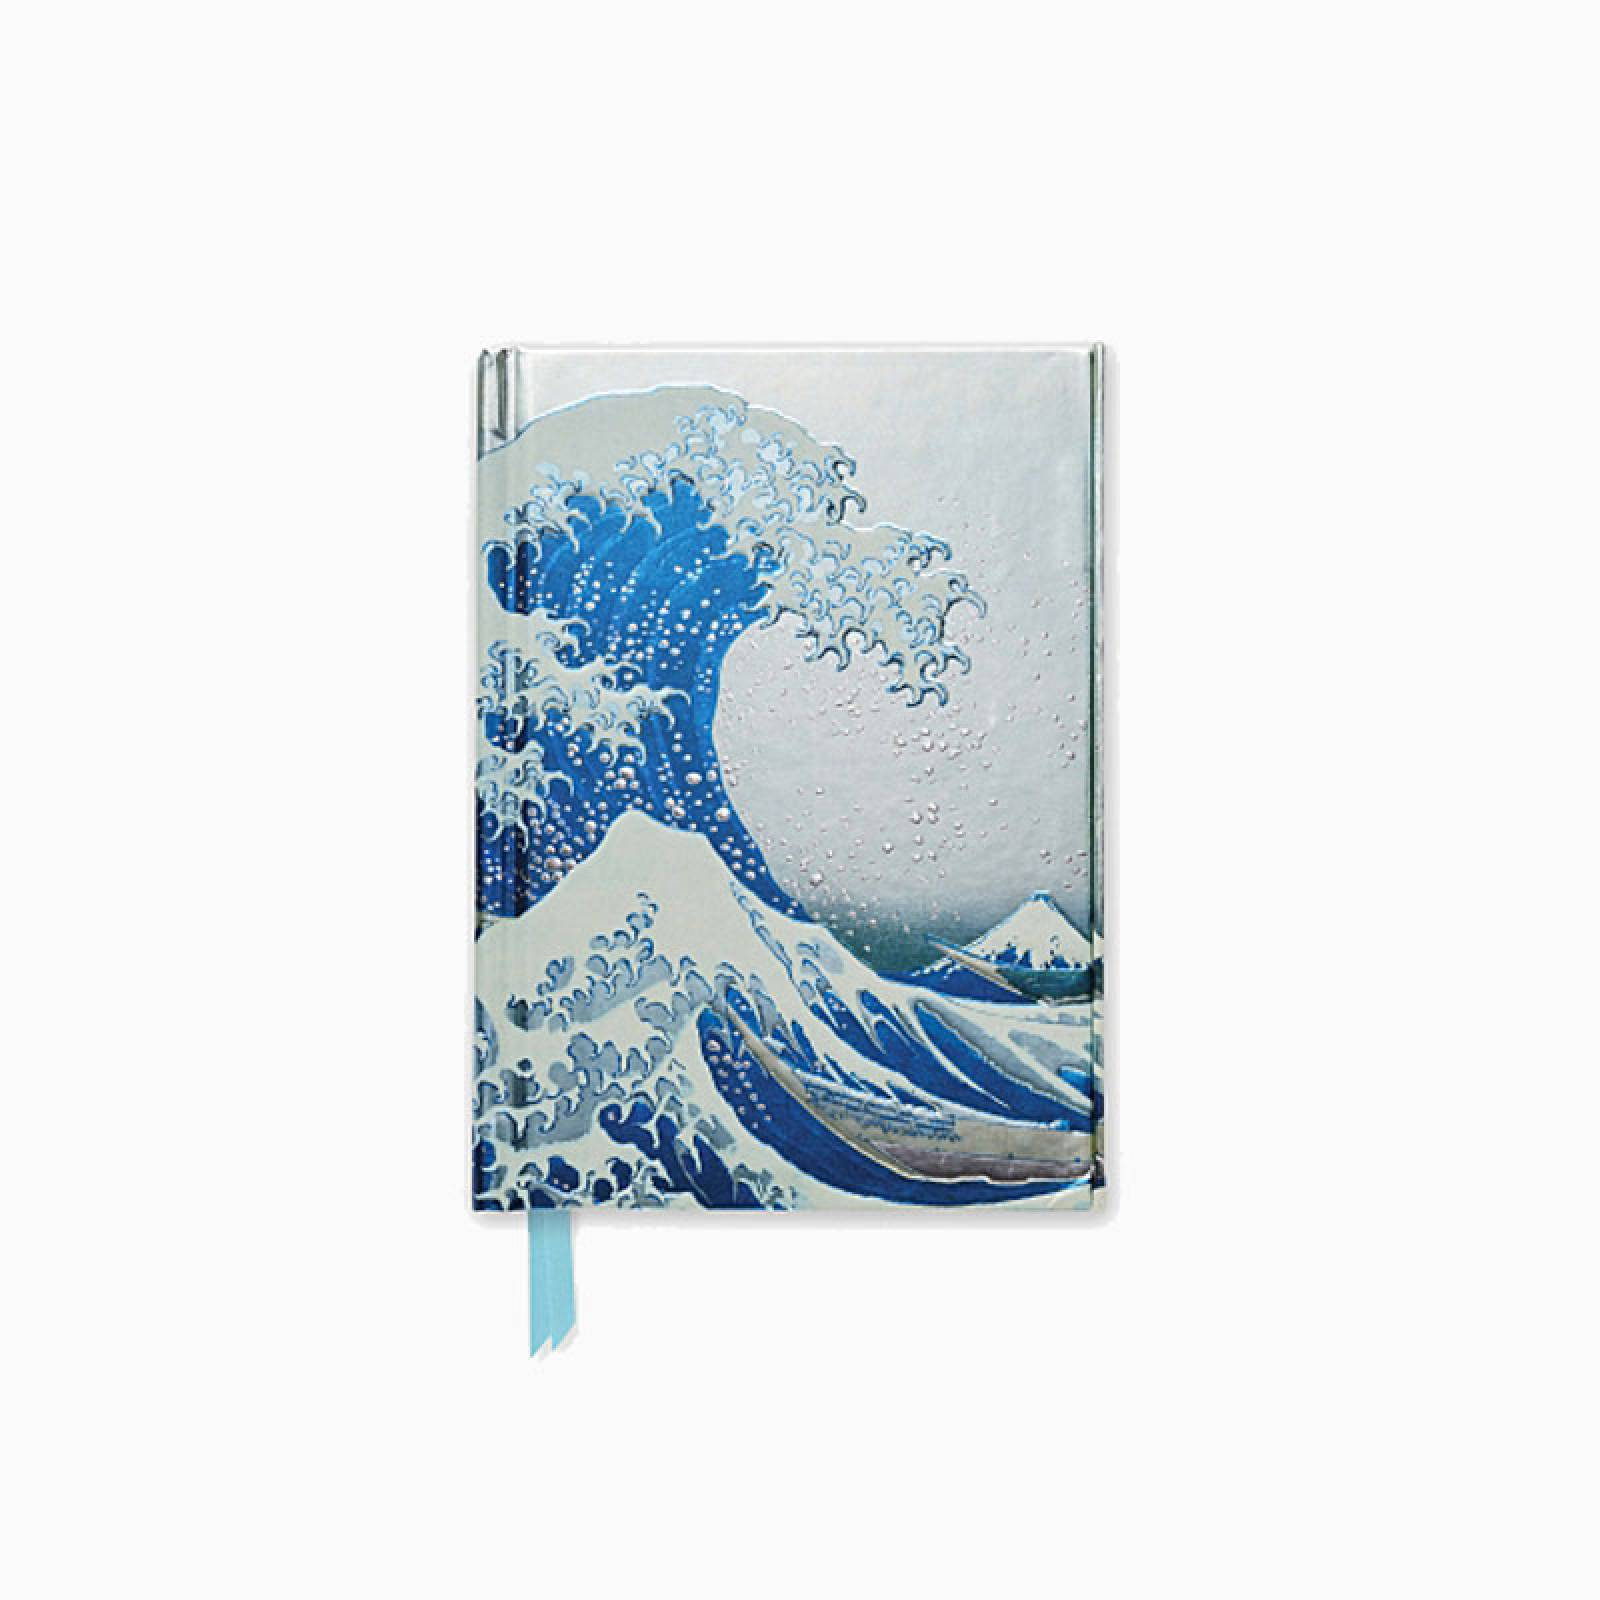 Hokusai The Great Wave - Foiled Pocket Journal thumbnails